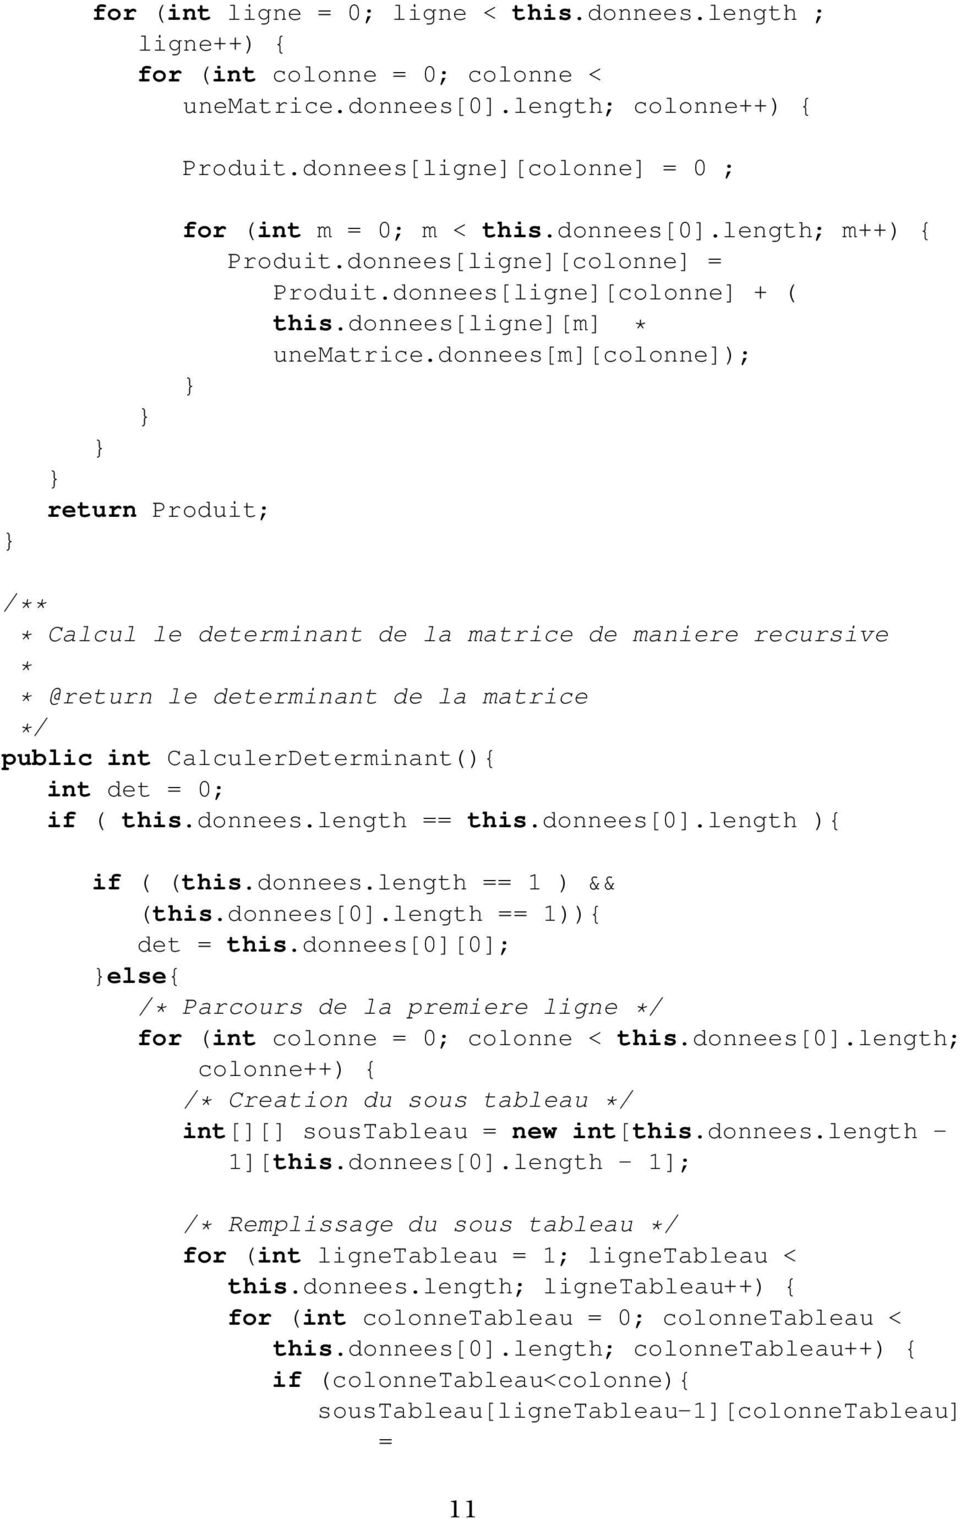 donnees[m][colonne]); return Produit; Calcul le determinant de la matrice de maniere recursive @return le determinant de la matrice public int CalculerDeterminant(){ int det = 0; if ( this.donnees.length == this.